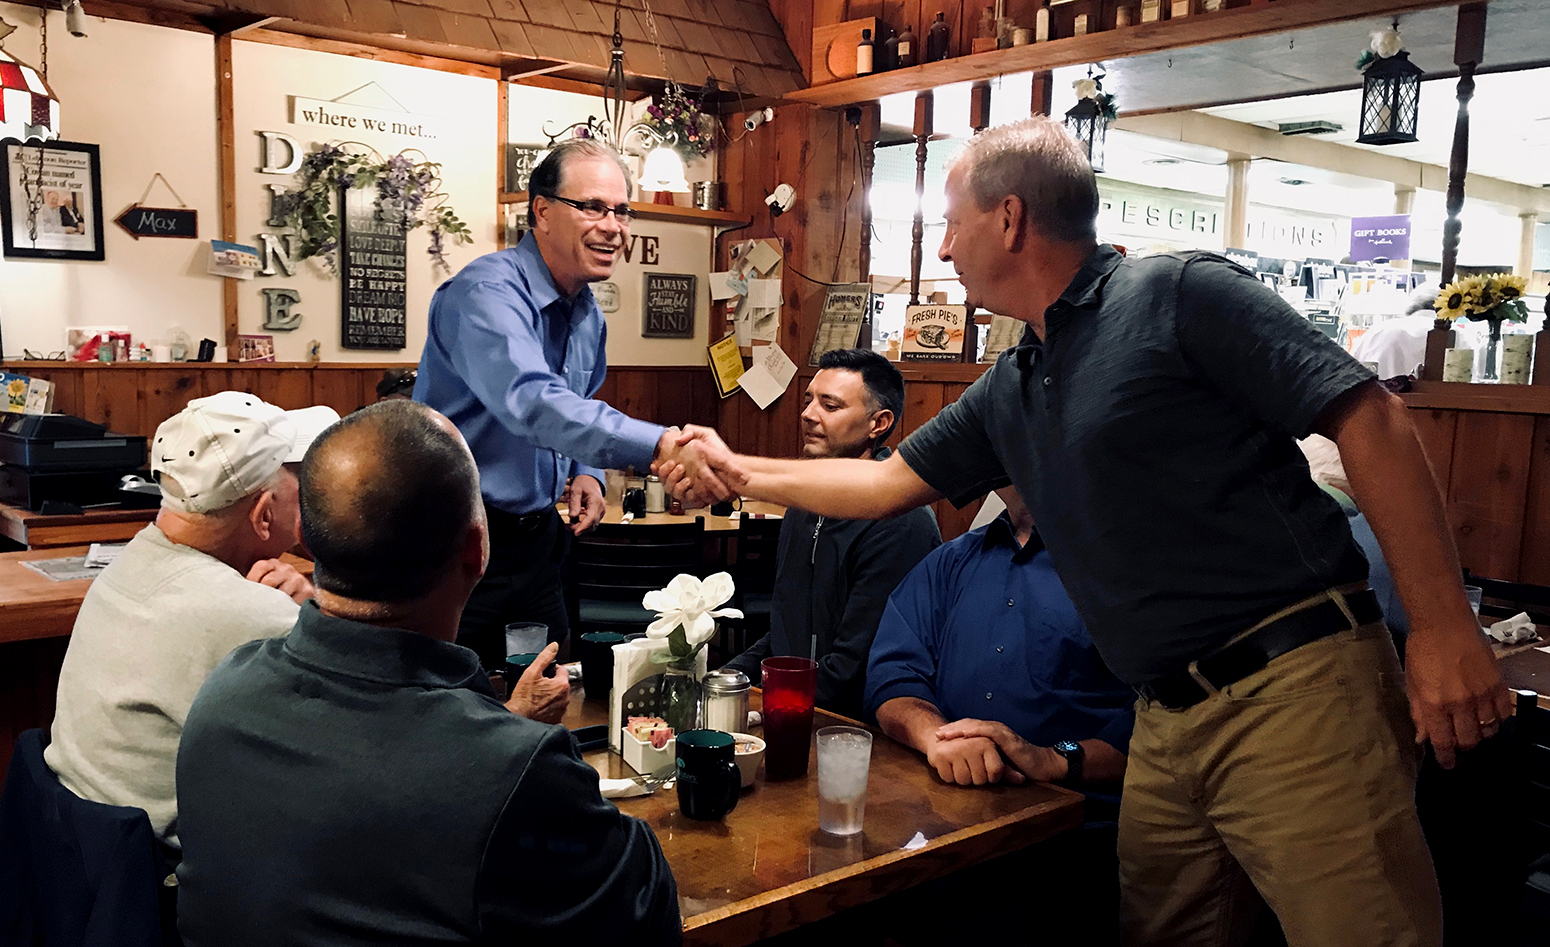 Senator Mike Braun meeting and shaking hands with constituents